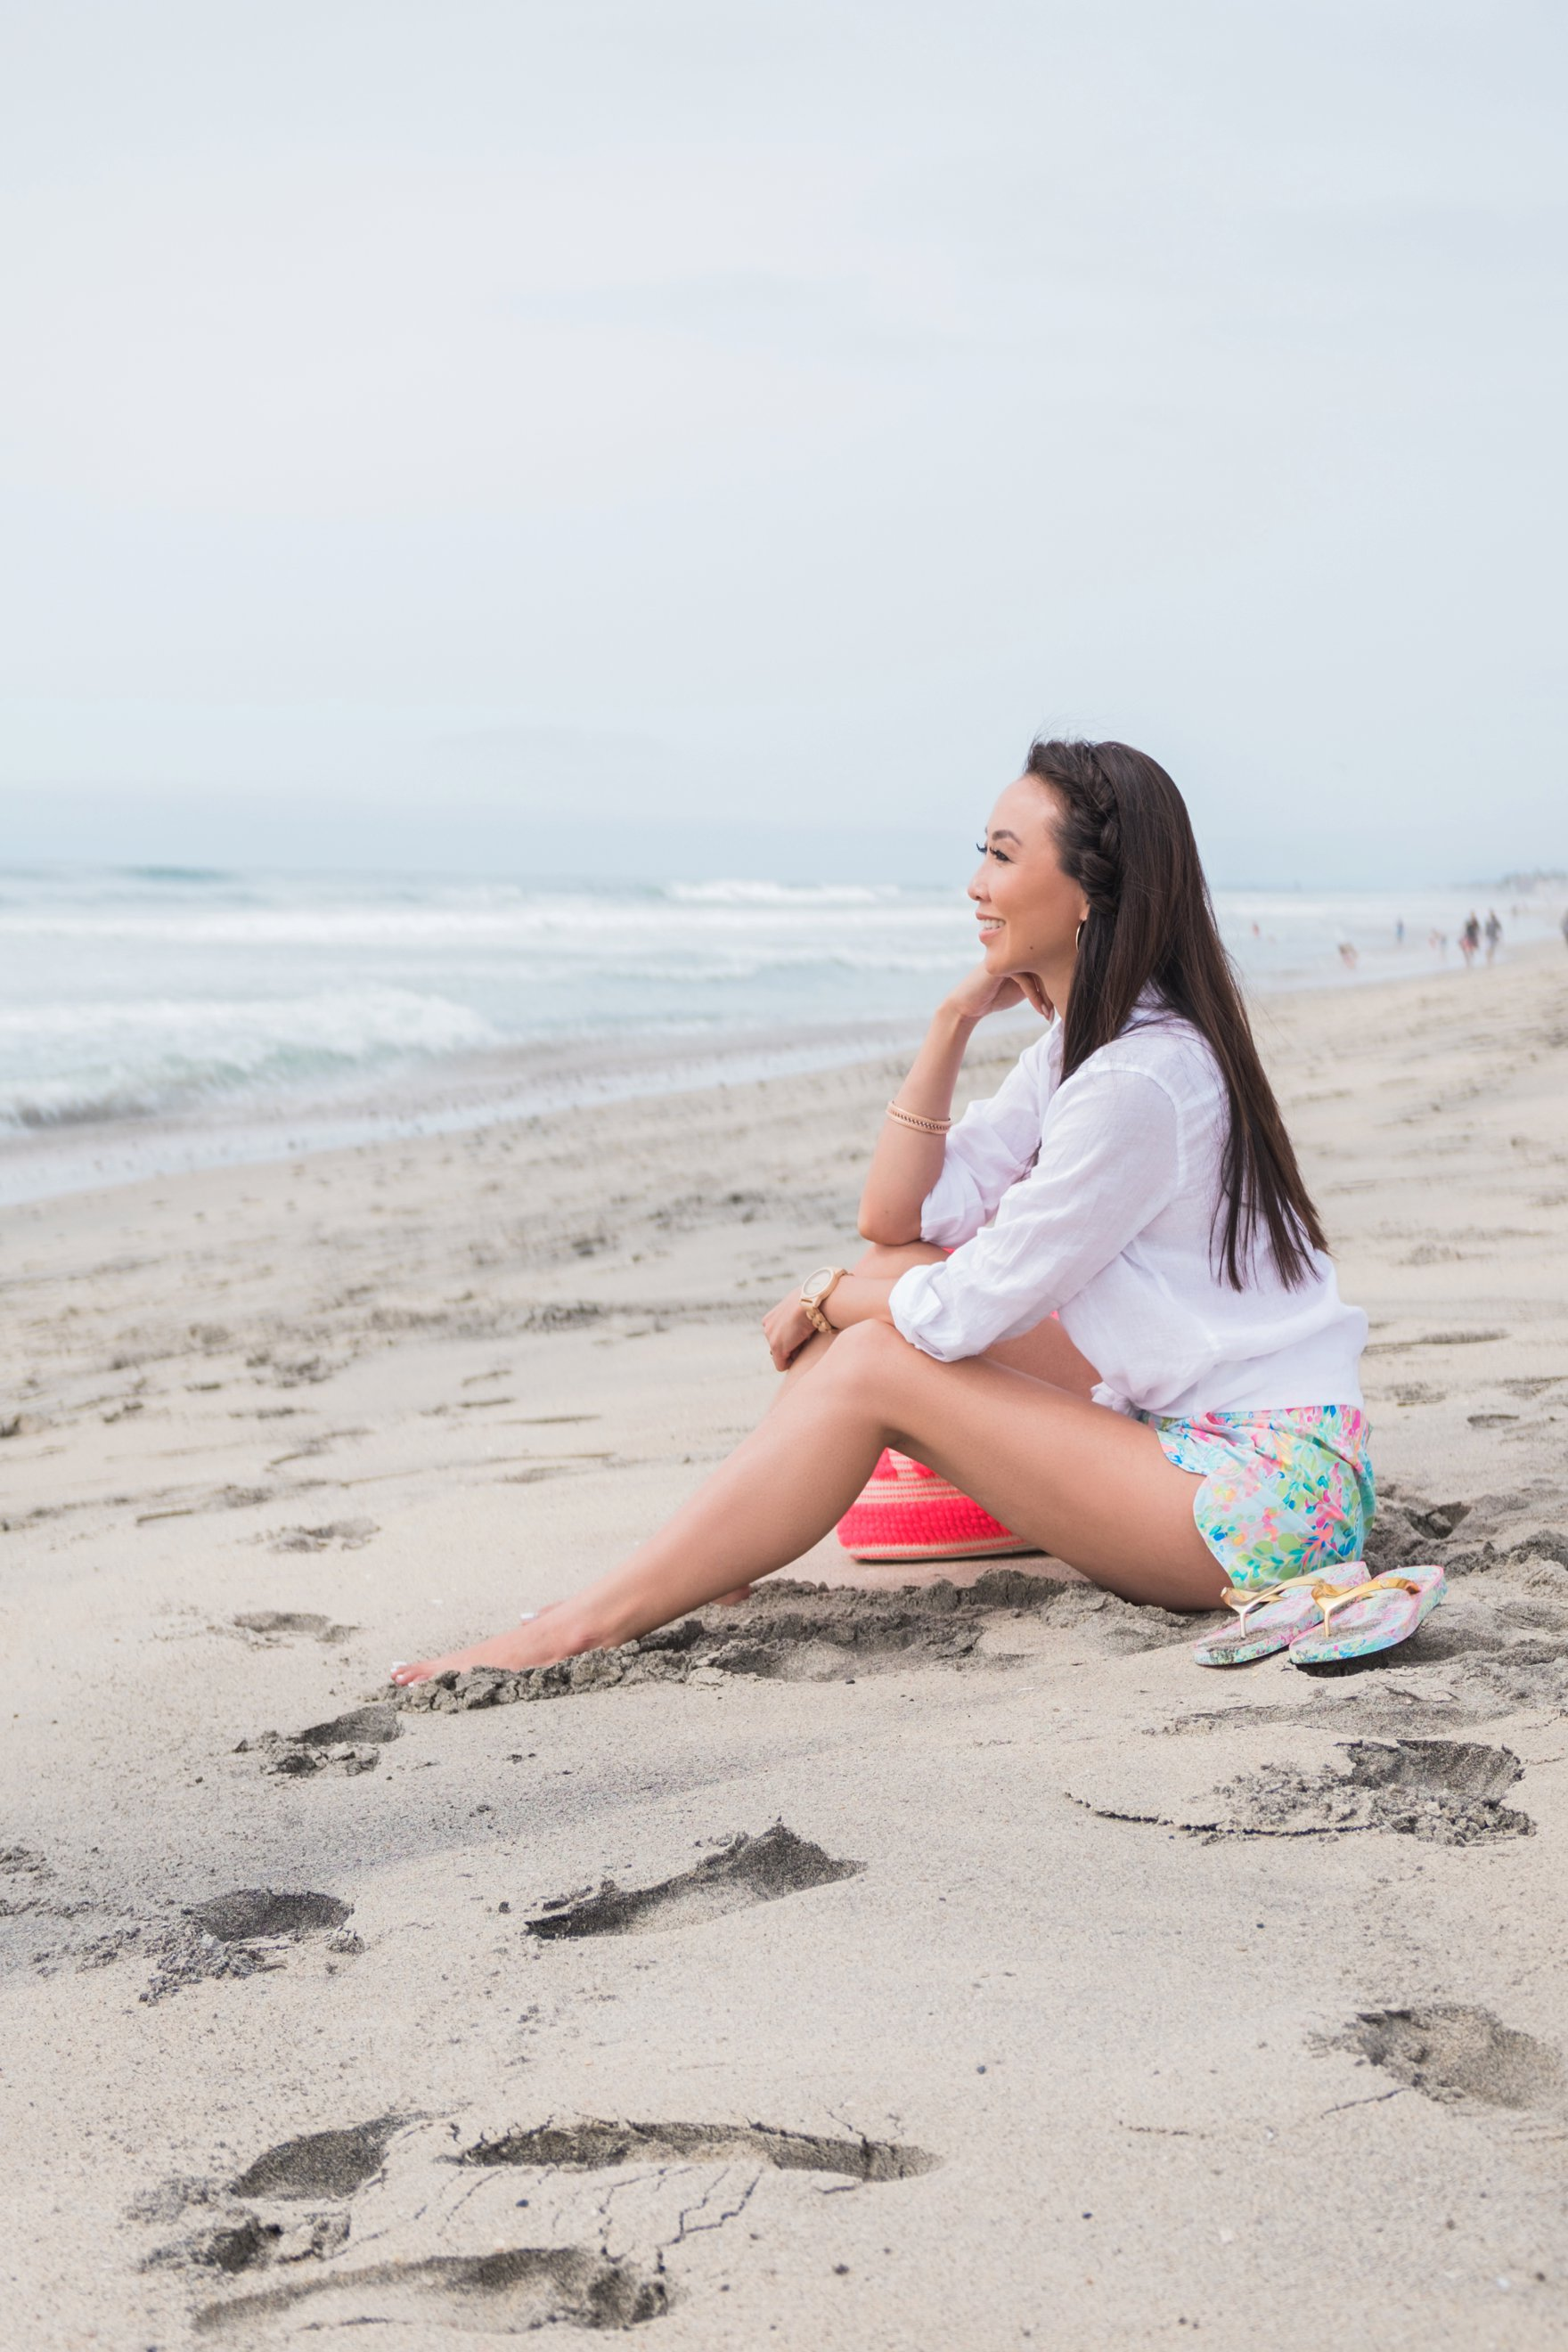 Carlsbad state beach wearing Lilly Pulitzer ocean view boardshort Diana Elizabeth blogger sitting on beach